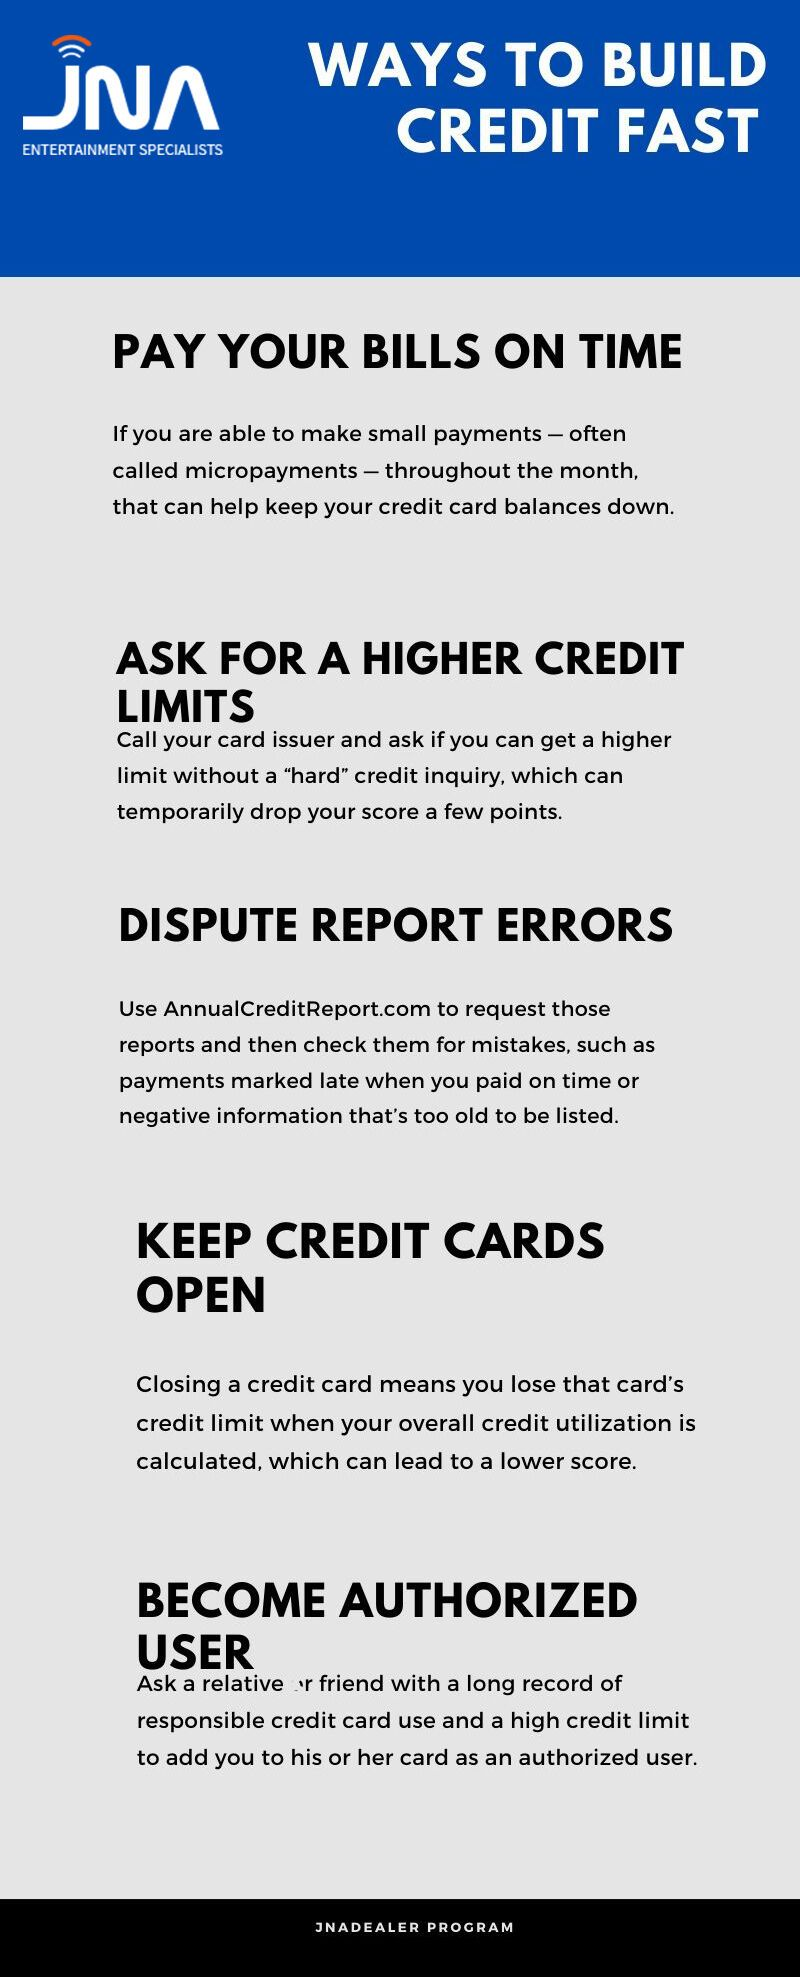 Fastest Way To Build Your Credit Score in 2020 JNA